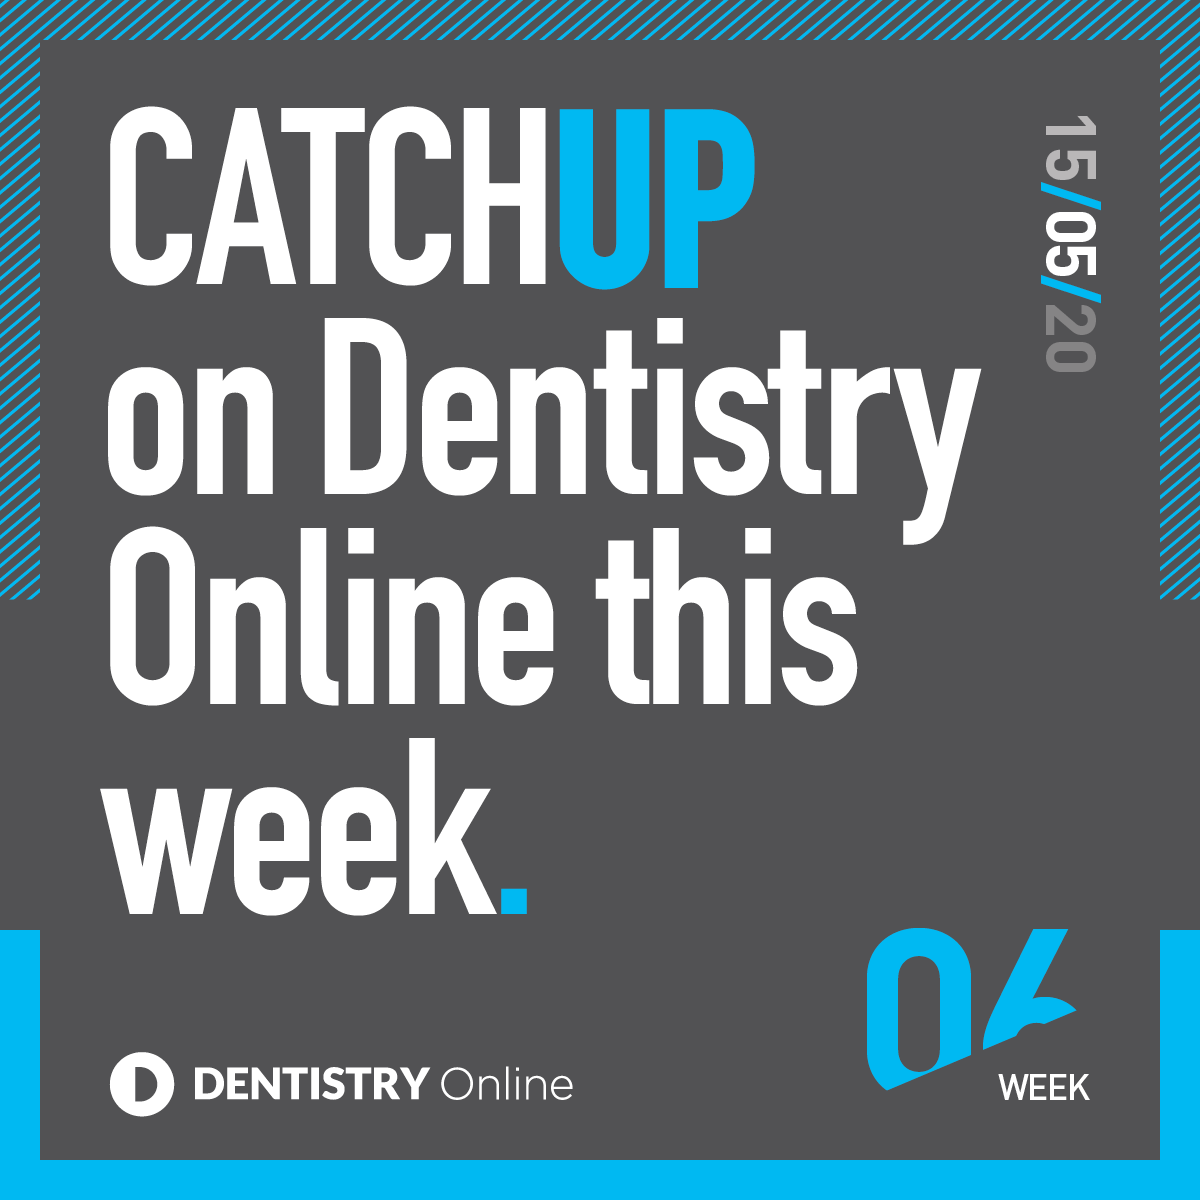 Missed out on this week's dental news? No problem, here's what happened over the past seven days…https://t.co/ha7gbFXjGy @TheBAPD    @TheBDA @JasonWong12  @SynergyDentist  #dentistrynews #ukdentalnews #dentistryupdate #dentalupdates #fmc  #uknewsdentistry #agp #ppe #dental https://t.co/Op53pvq17X